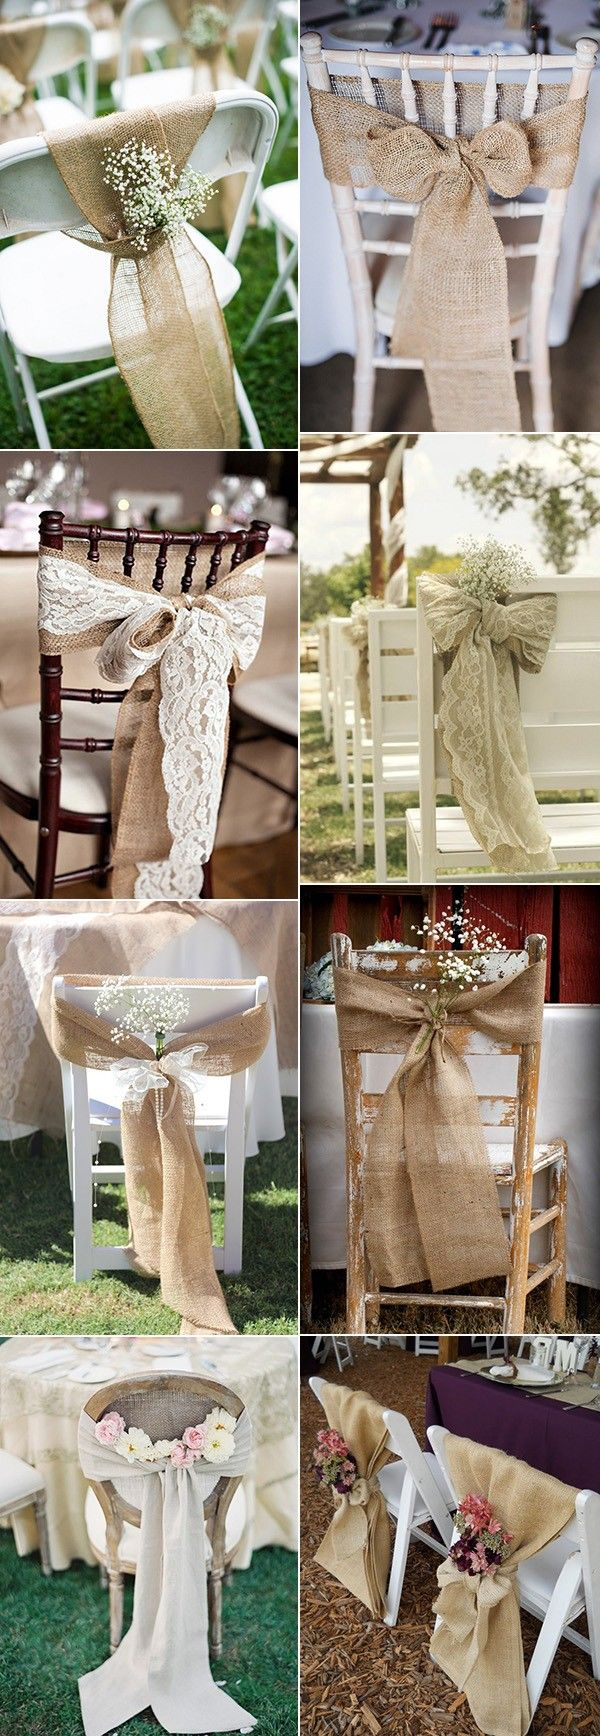 Wedding ceremony chair - 28 Awesome Wedding Chair Decoration Ideas For Ceremony And Reception